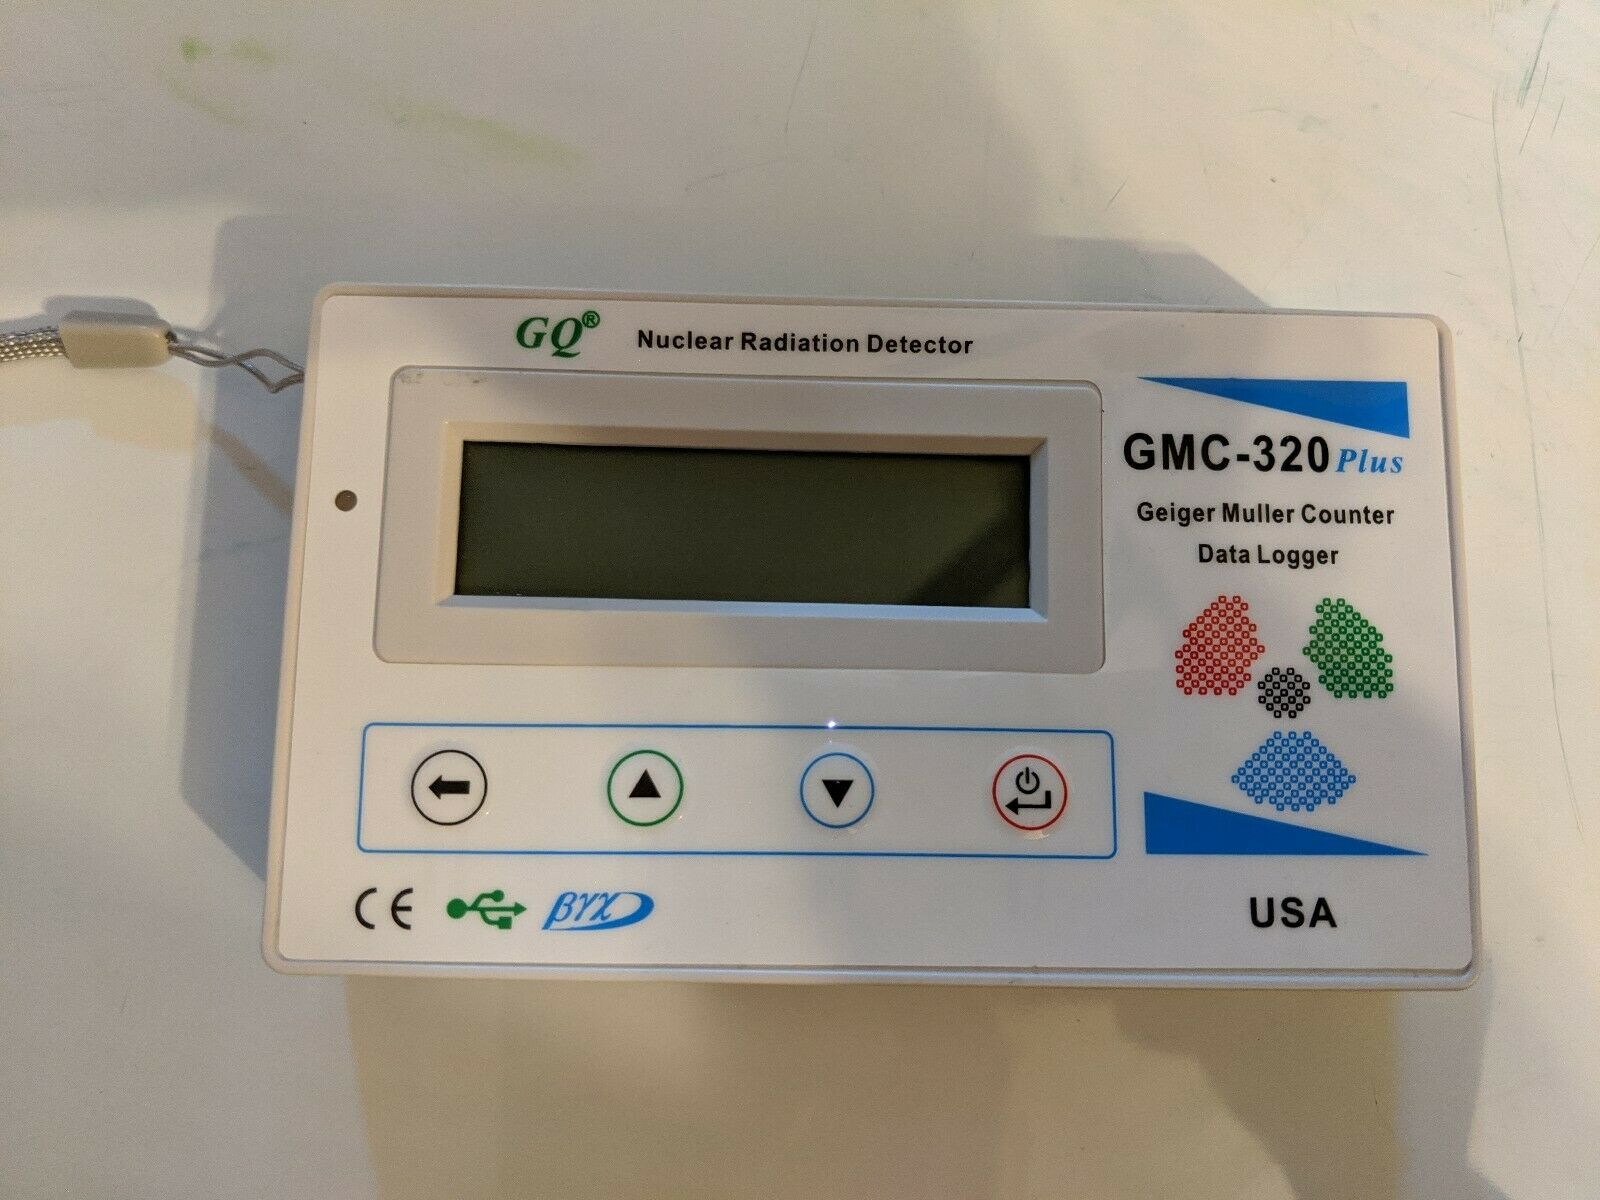 s l1600 - GMC-320 PLUS GEIGER COUNTER RADIATION DETECTOR GQ ELECTRONICS